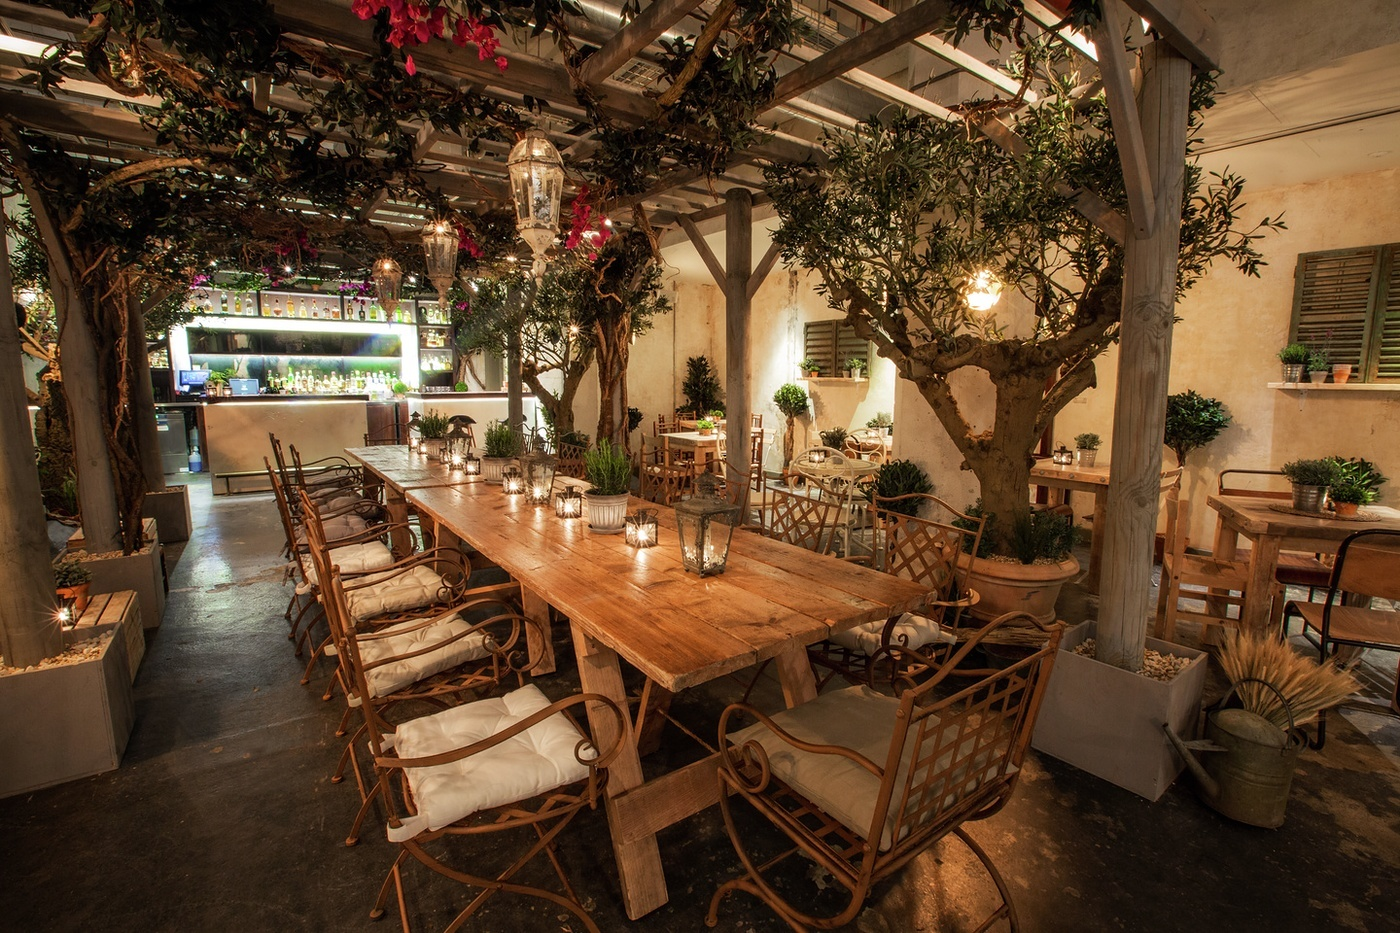 Valentine's Day Dinner in 'The Olive Grove' at Union Street Café